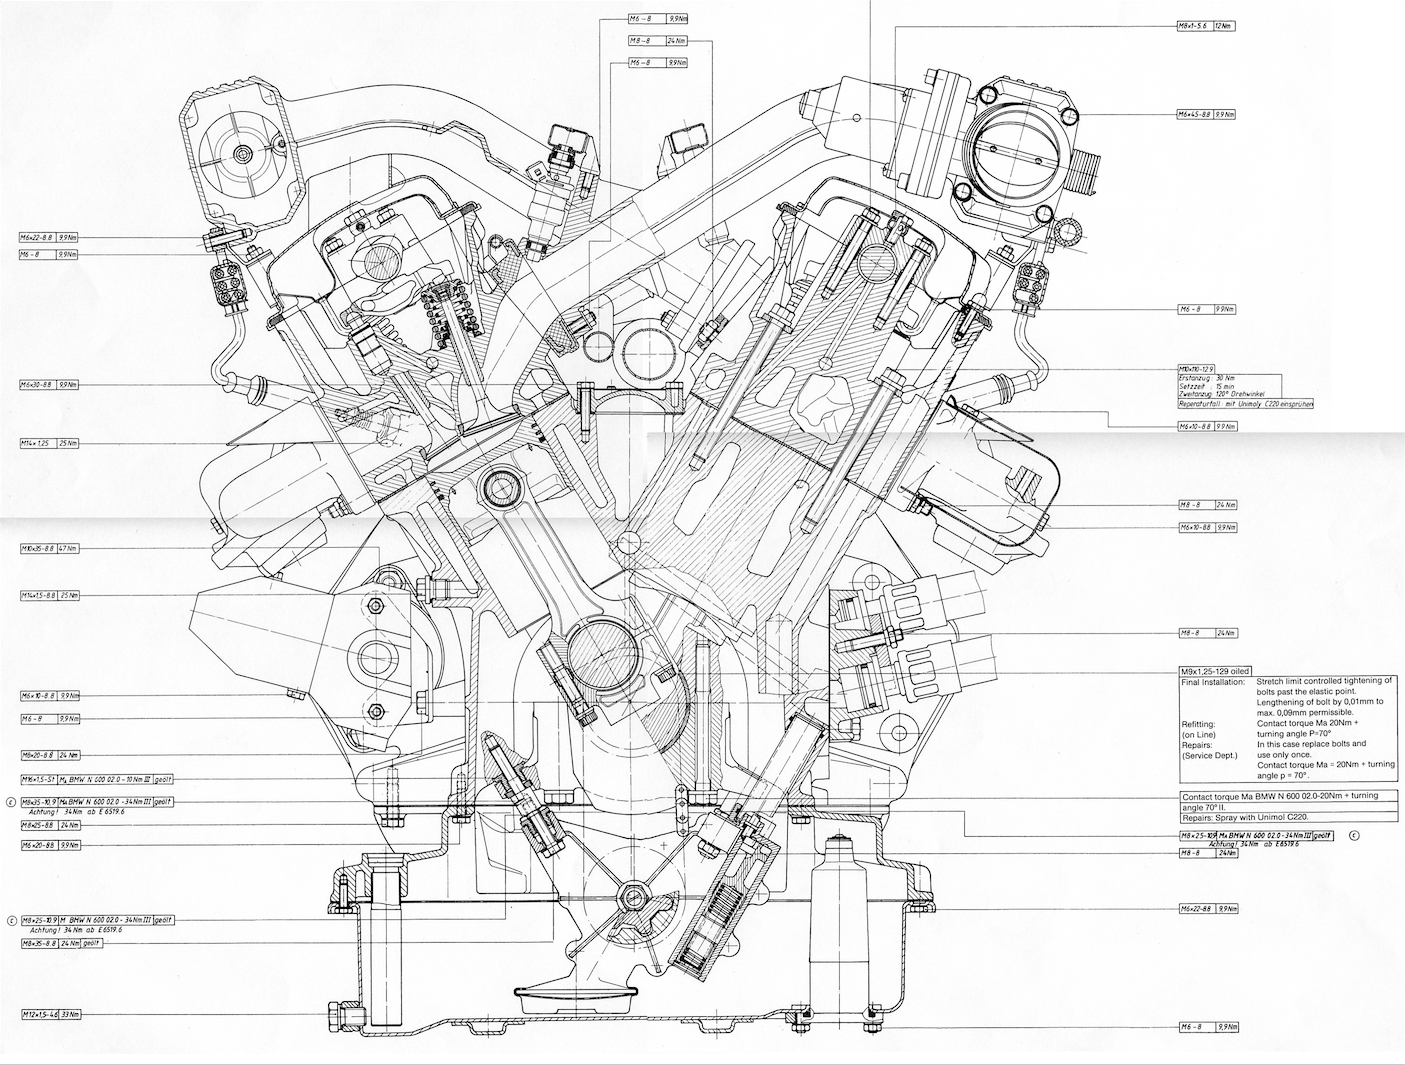 Pin By Michael Silok On Engines Internal Combustion